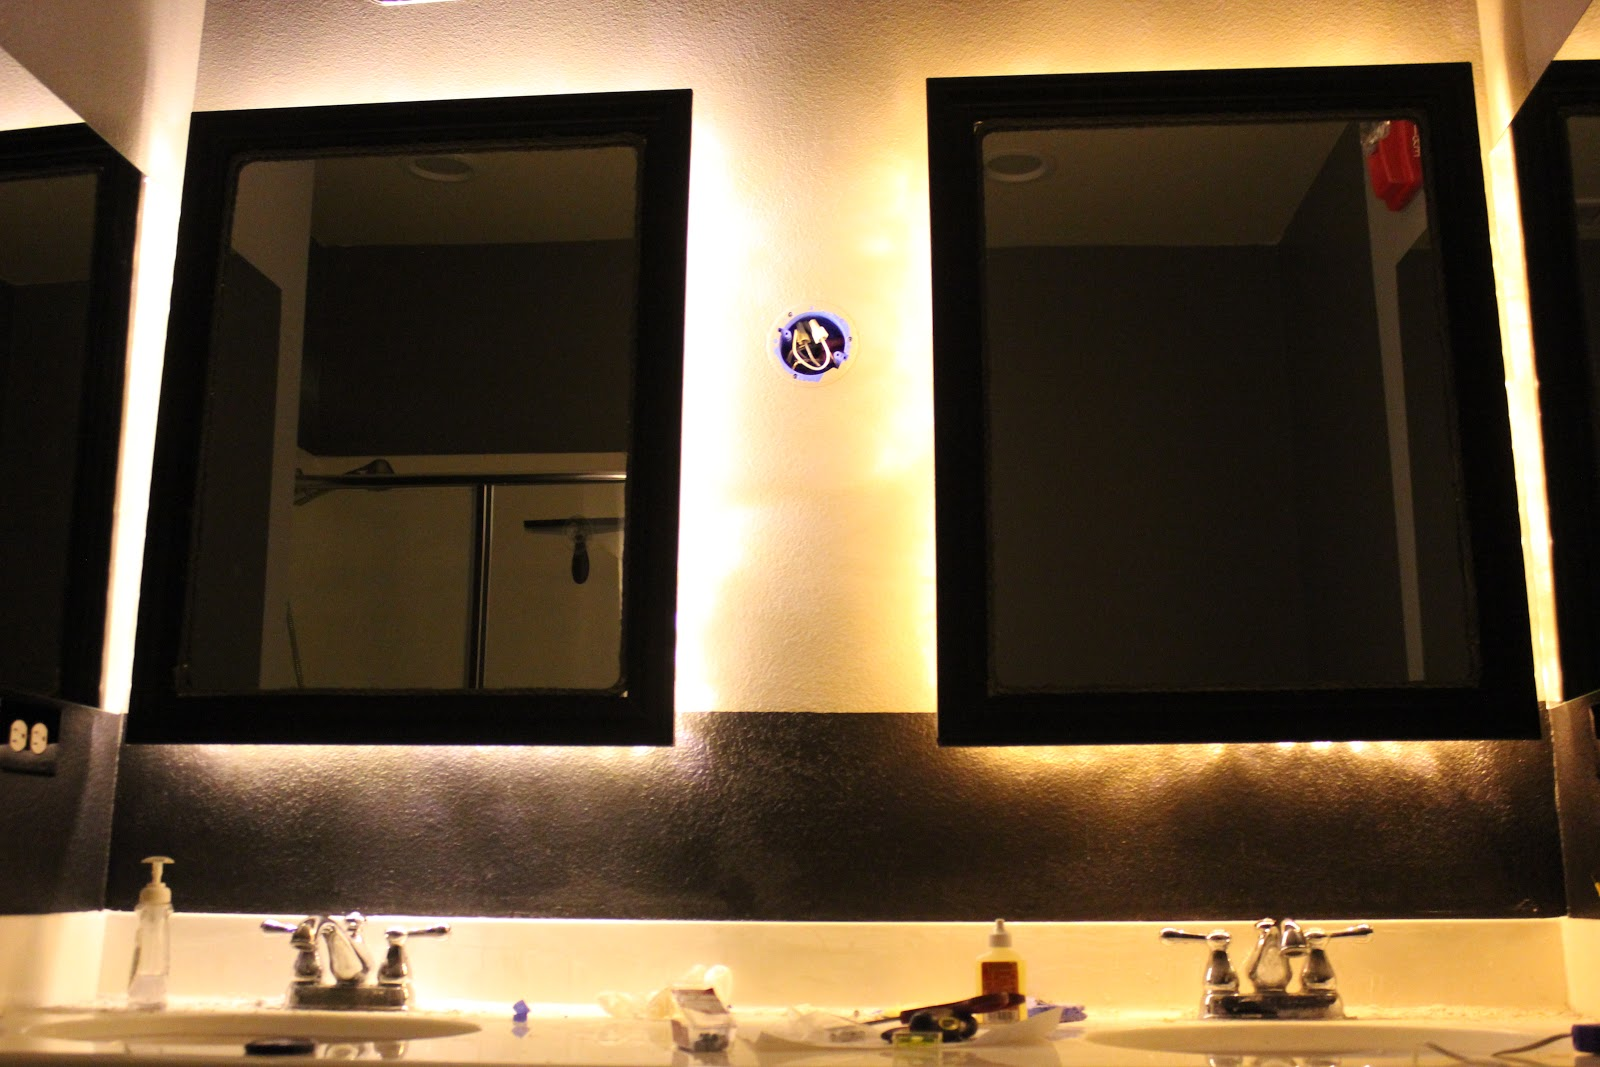 Diy Led Mirror Frame Inside The Frame The Master Bathroom Project Adding